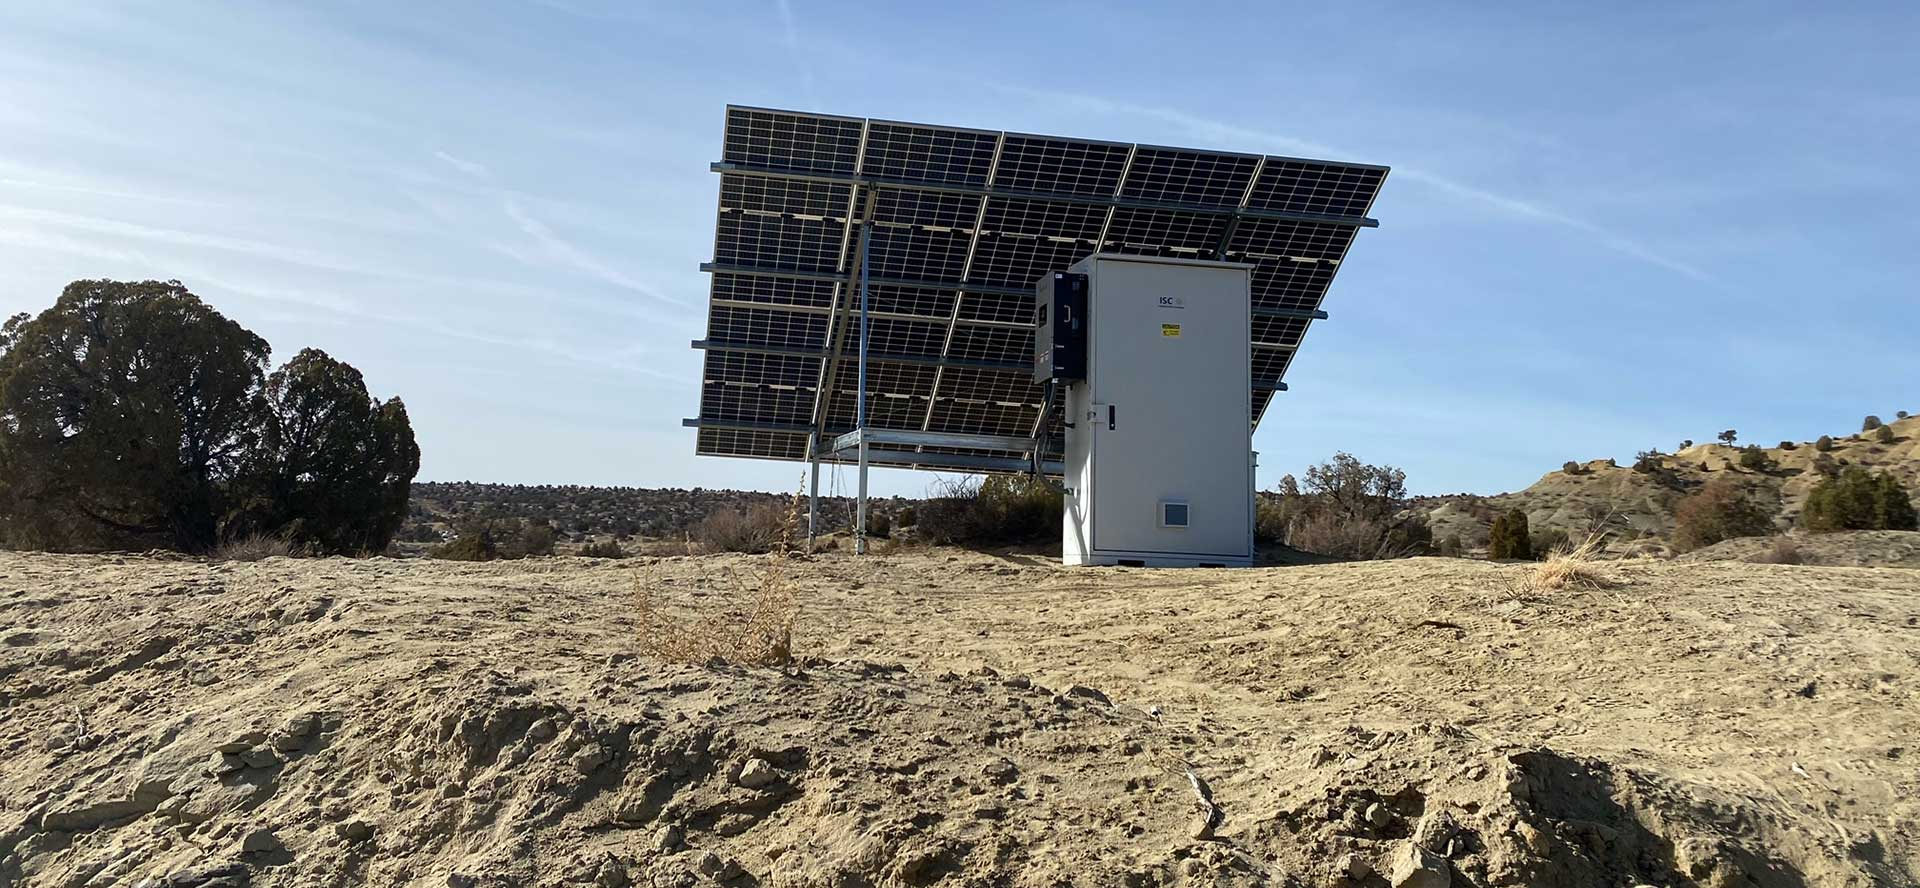 Off-grid solar project on the Navajo Nation